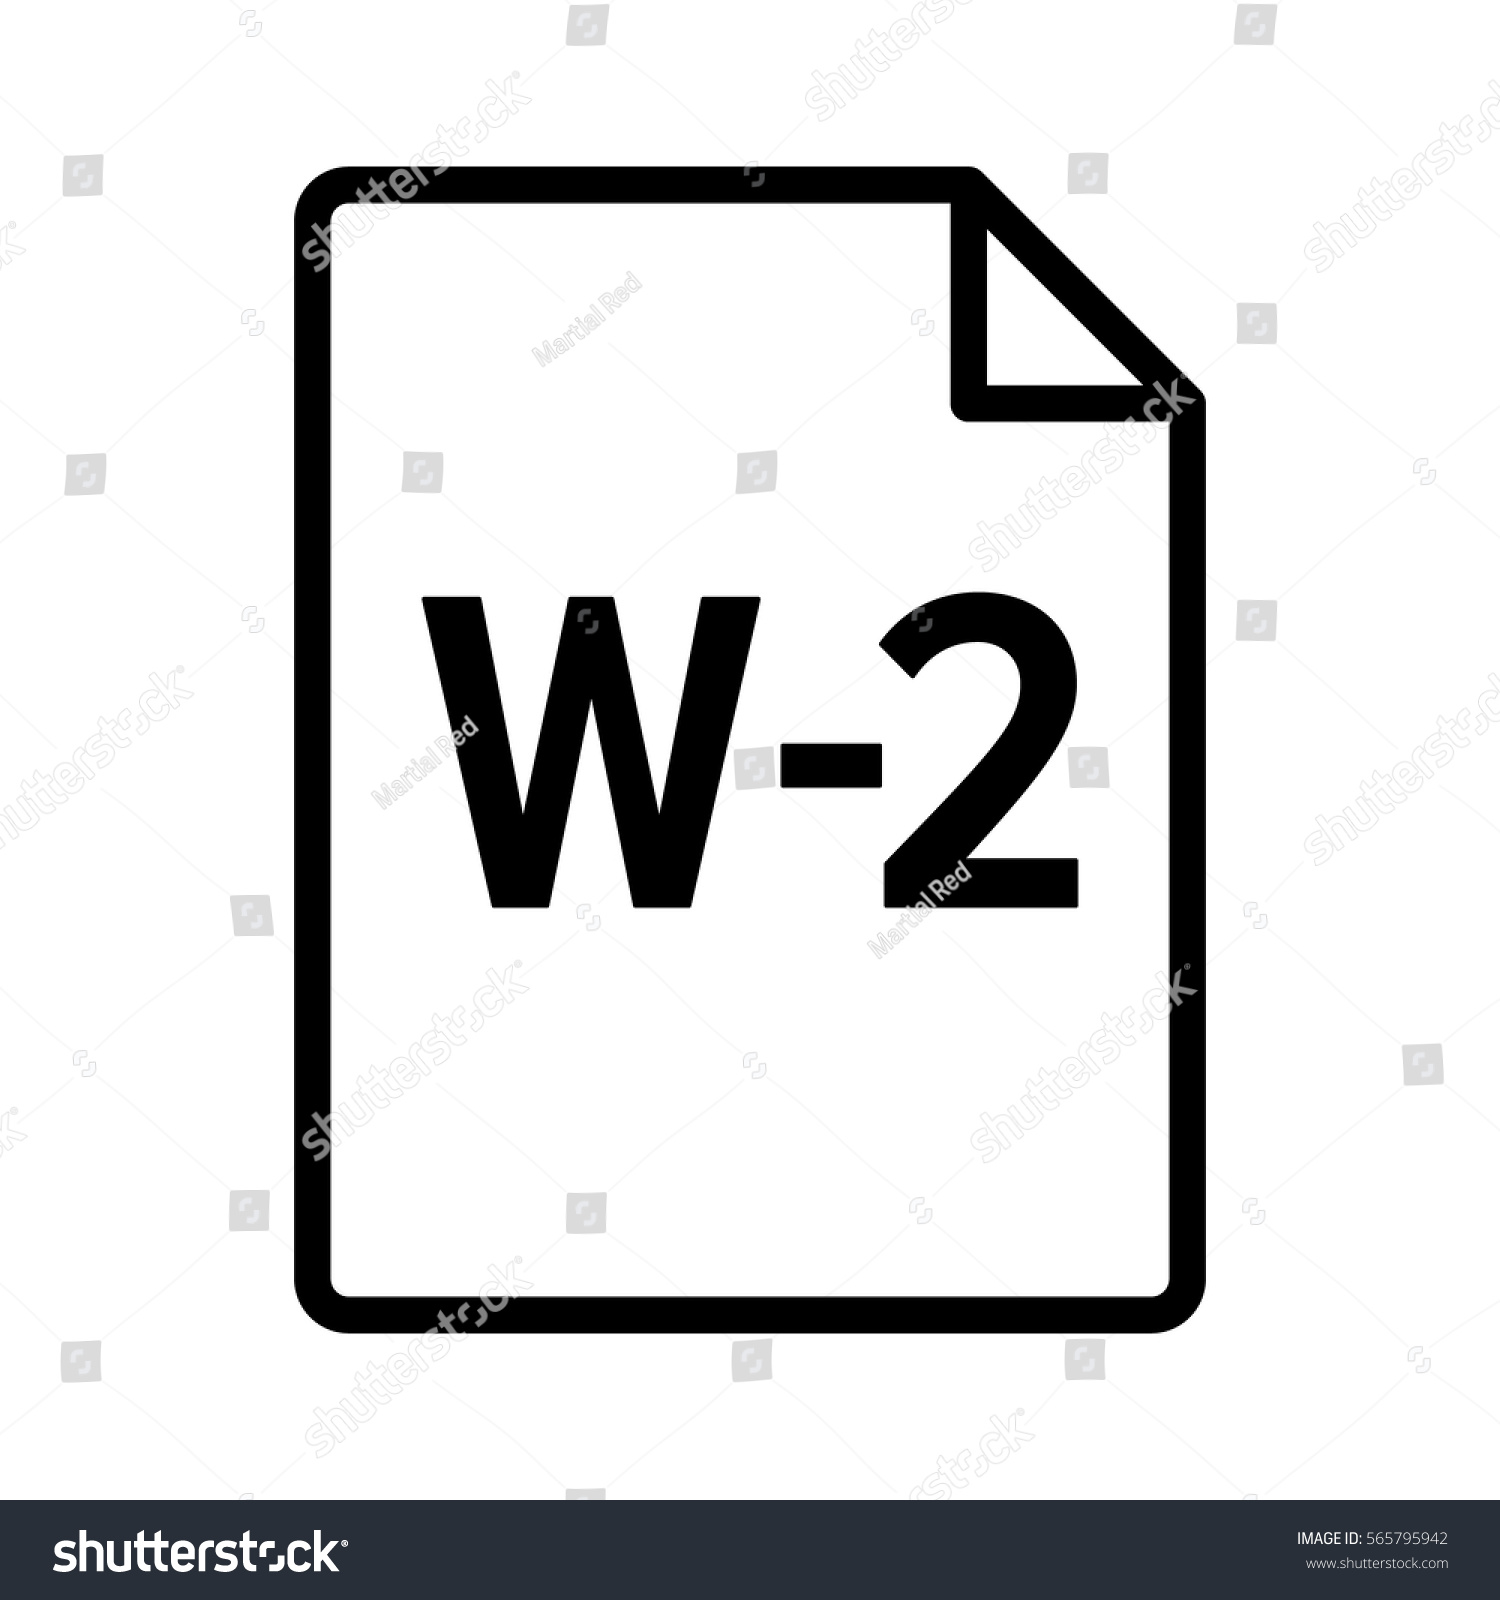 W 2 W 2 IRS Tax Form Document Stock Vector (Royalty Free) 565795942 ...